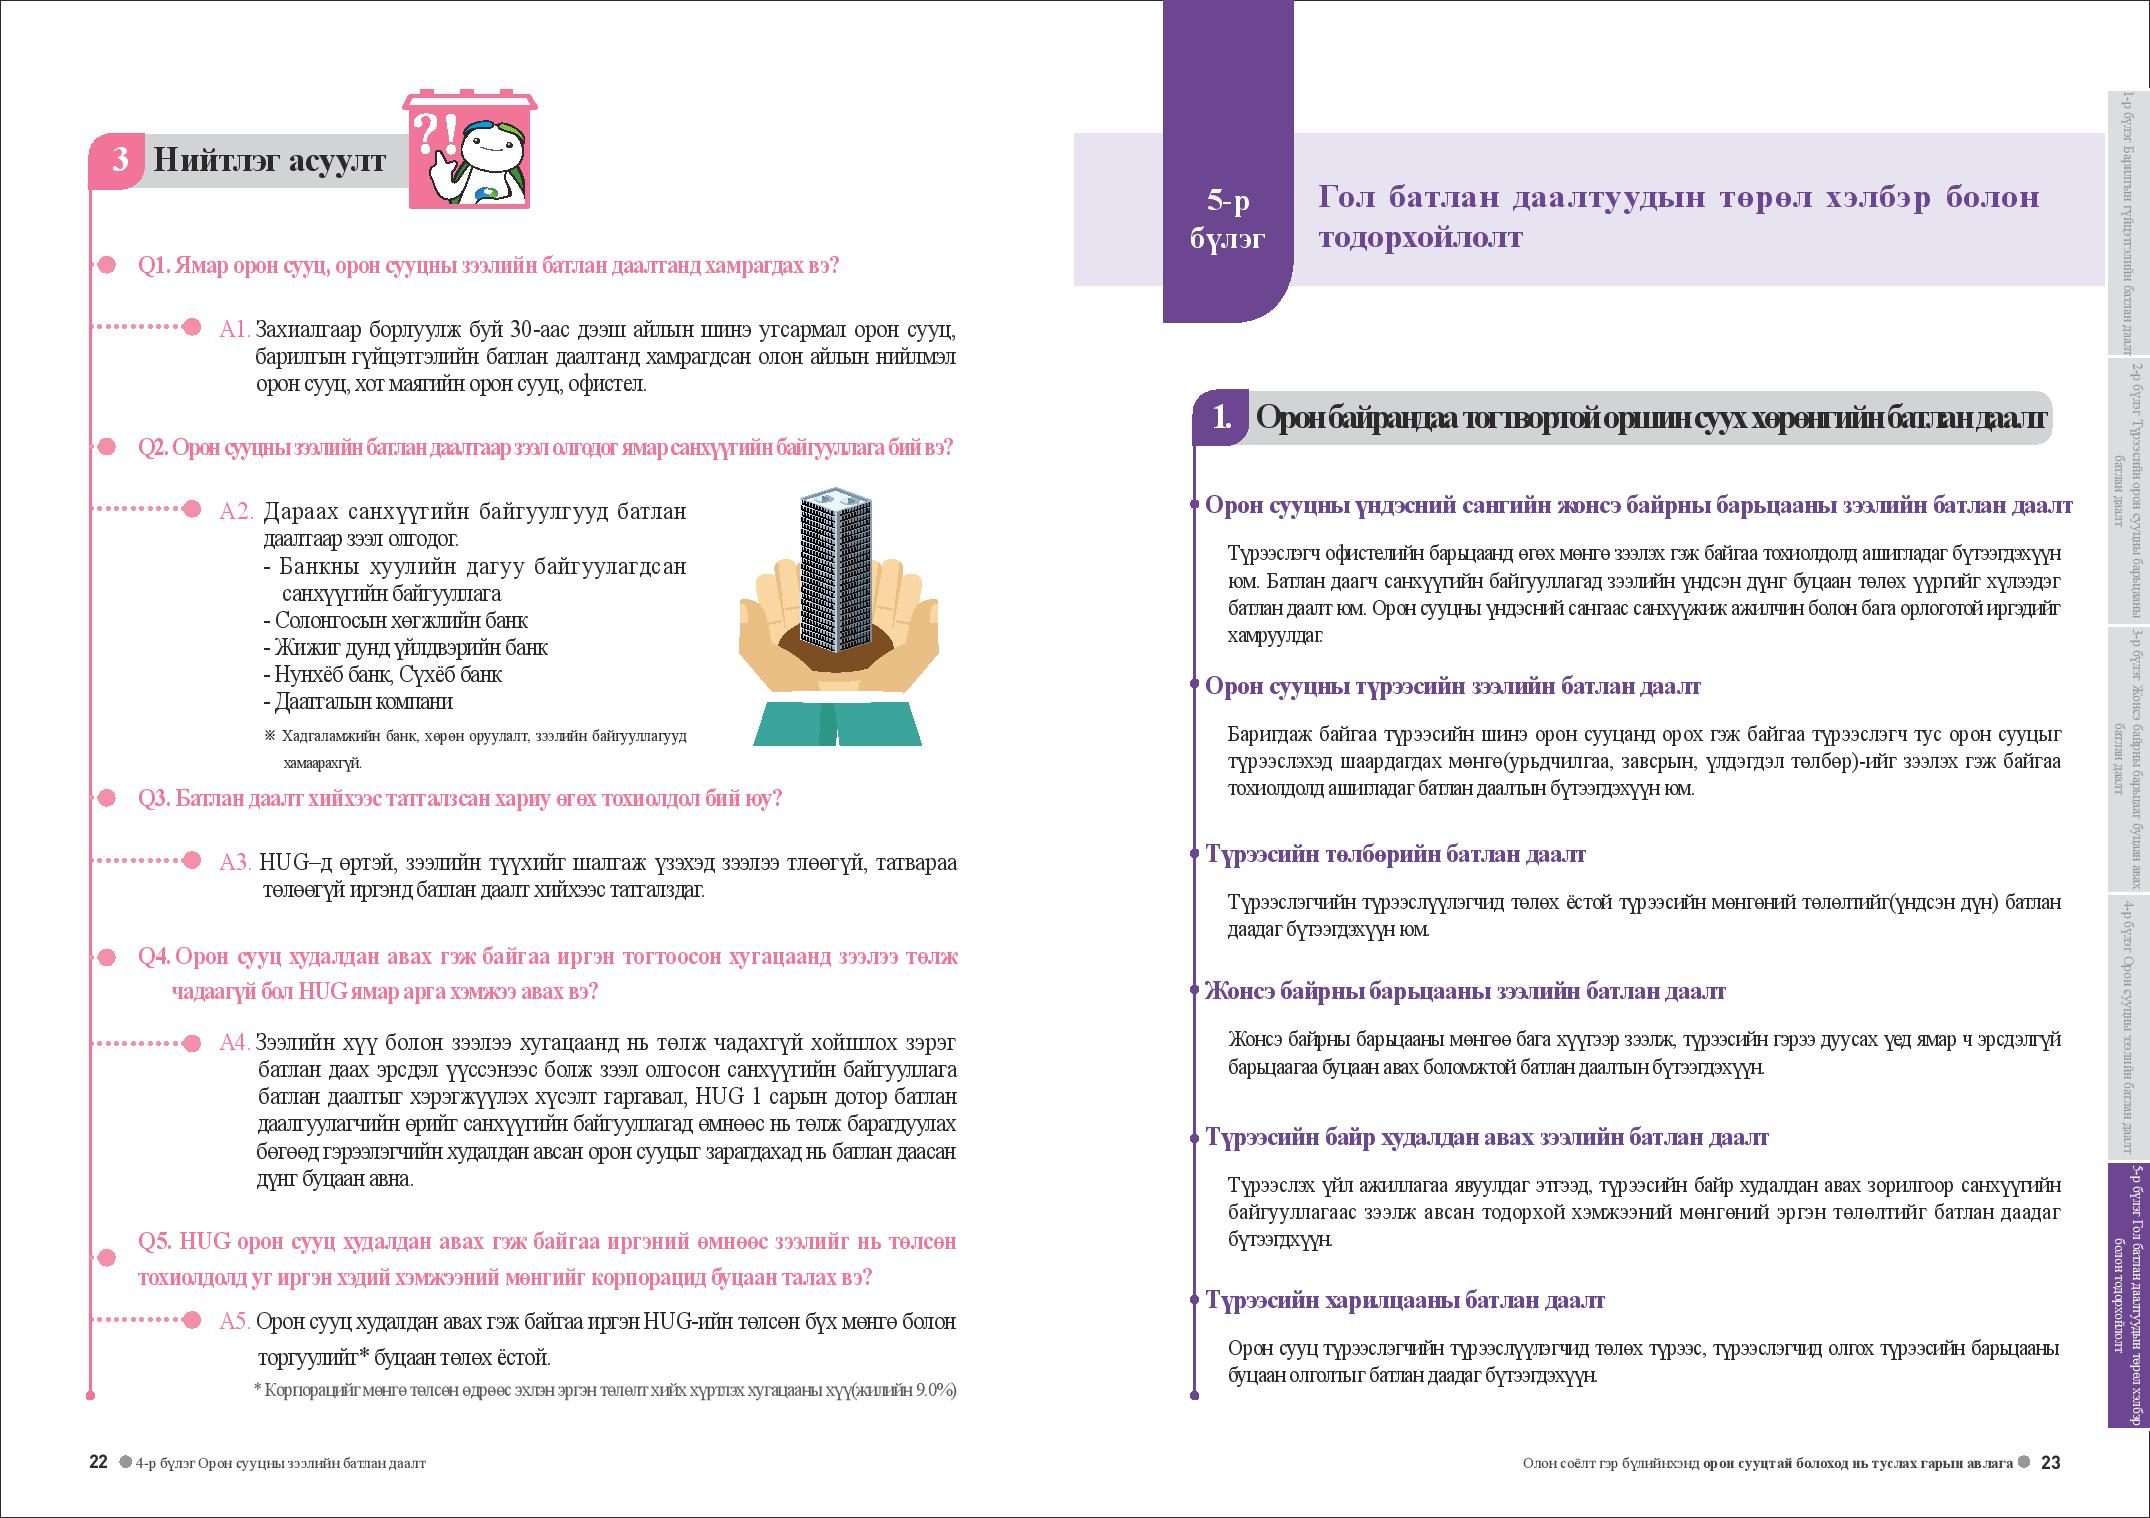 Document-page-012.jpg